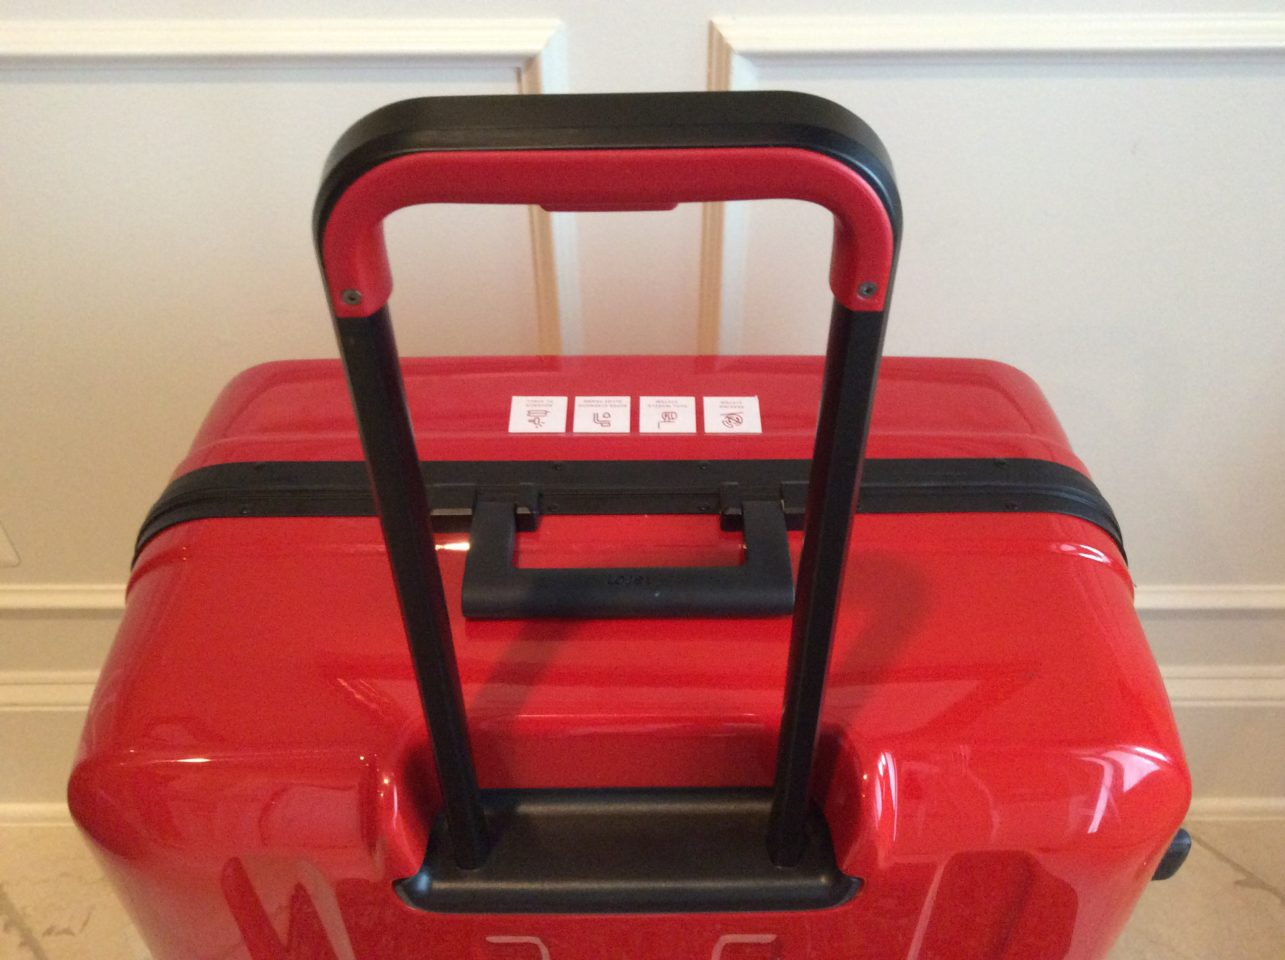 Lojel Luggage ~ Sturdy telescoping handle and one-piece trolley system